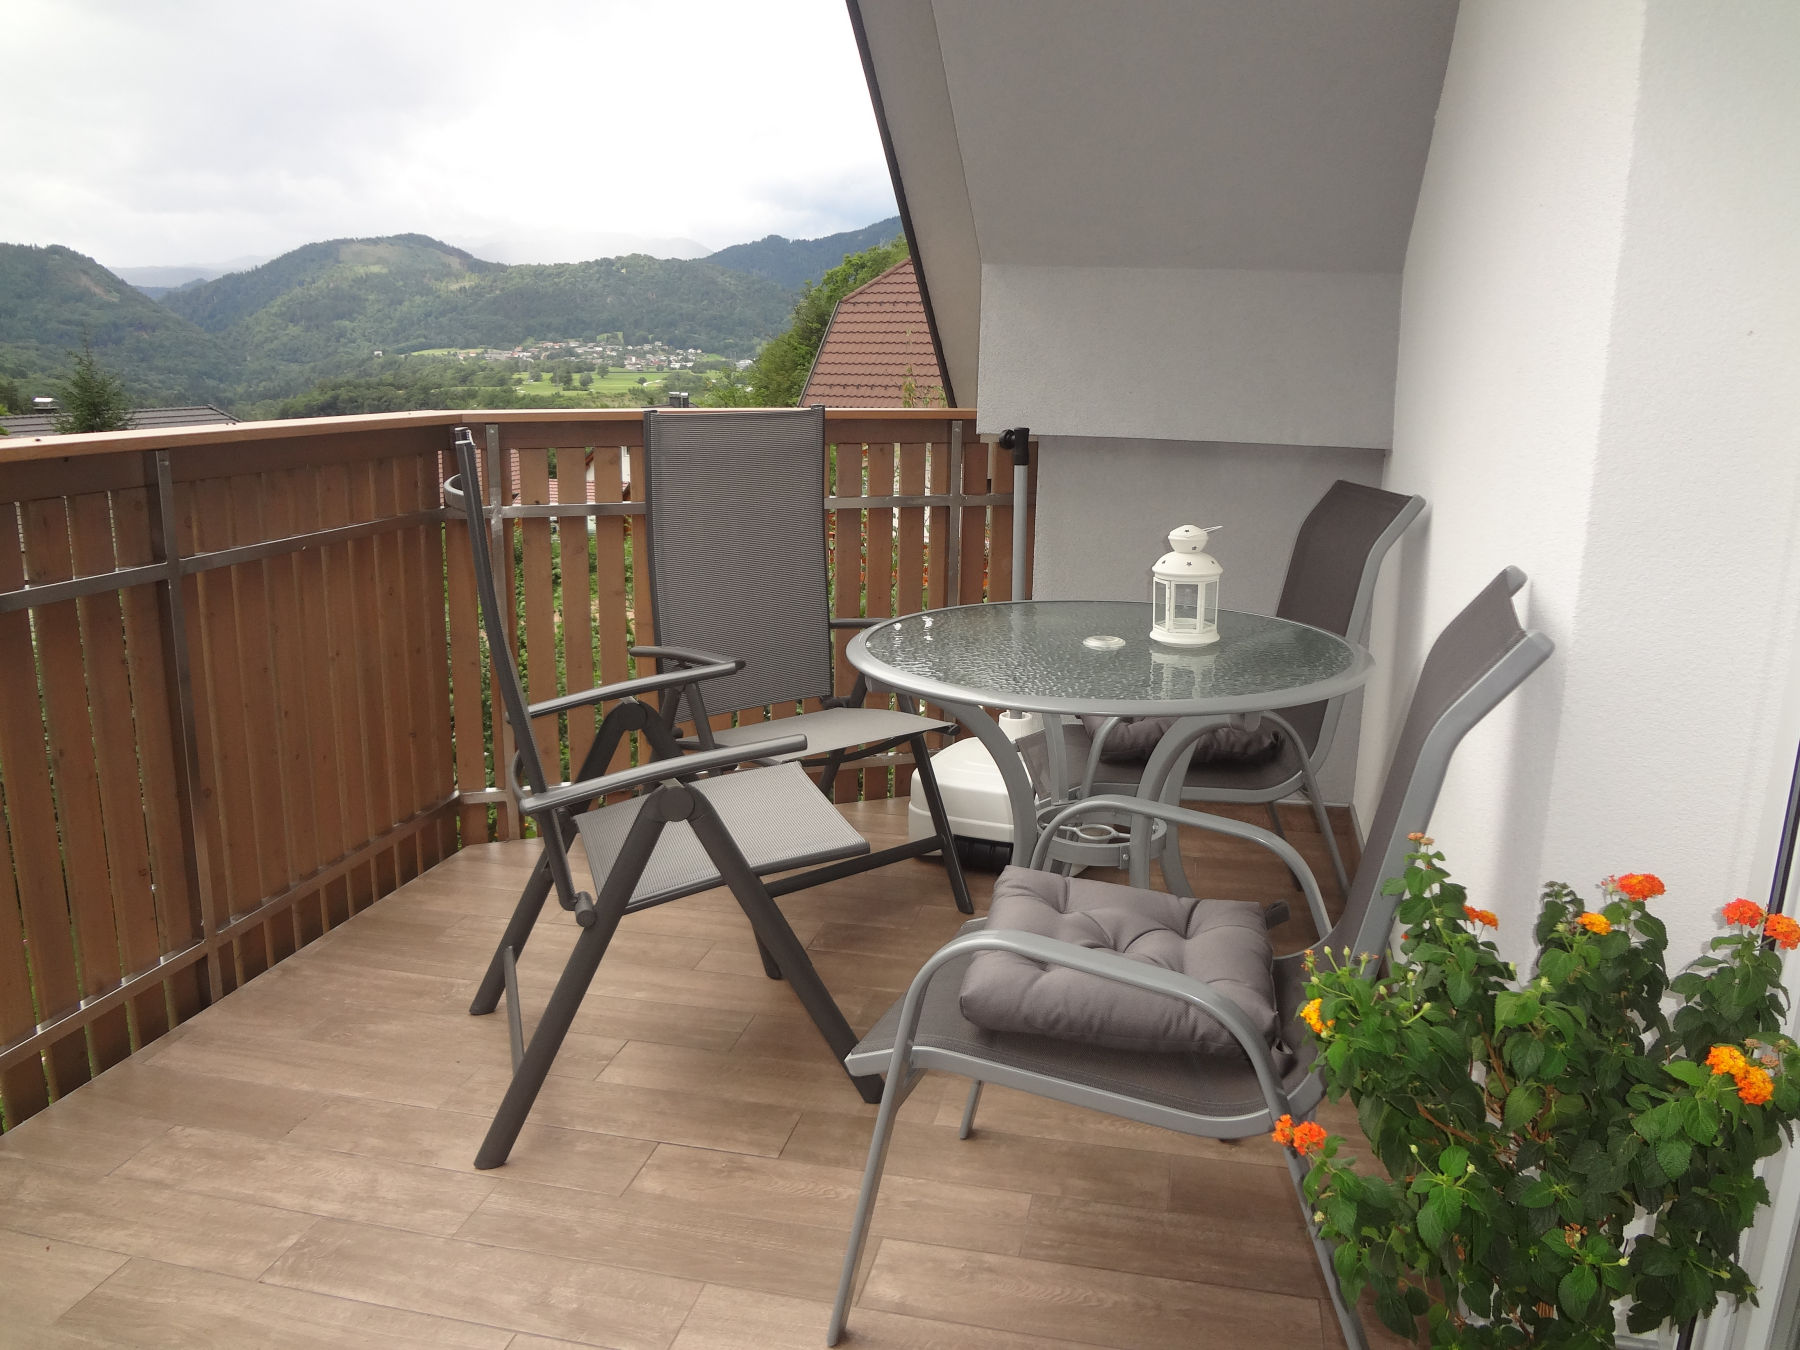 A balcony with garden furniture at the Fine Stay Apartment in the Bled Area Of Slovenia